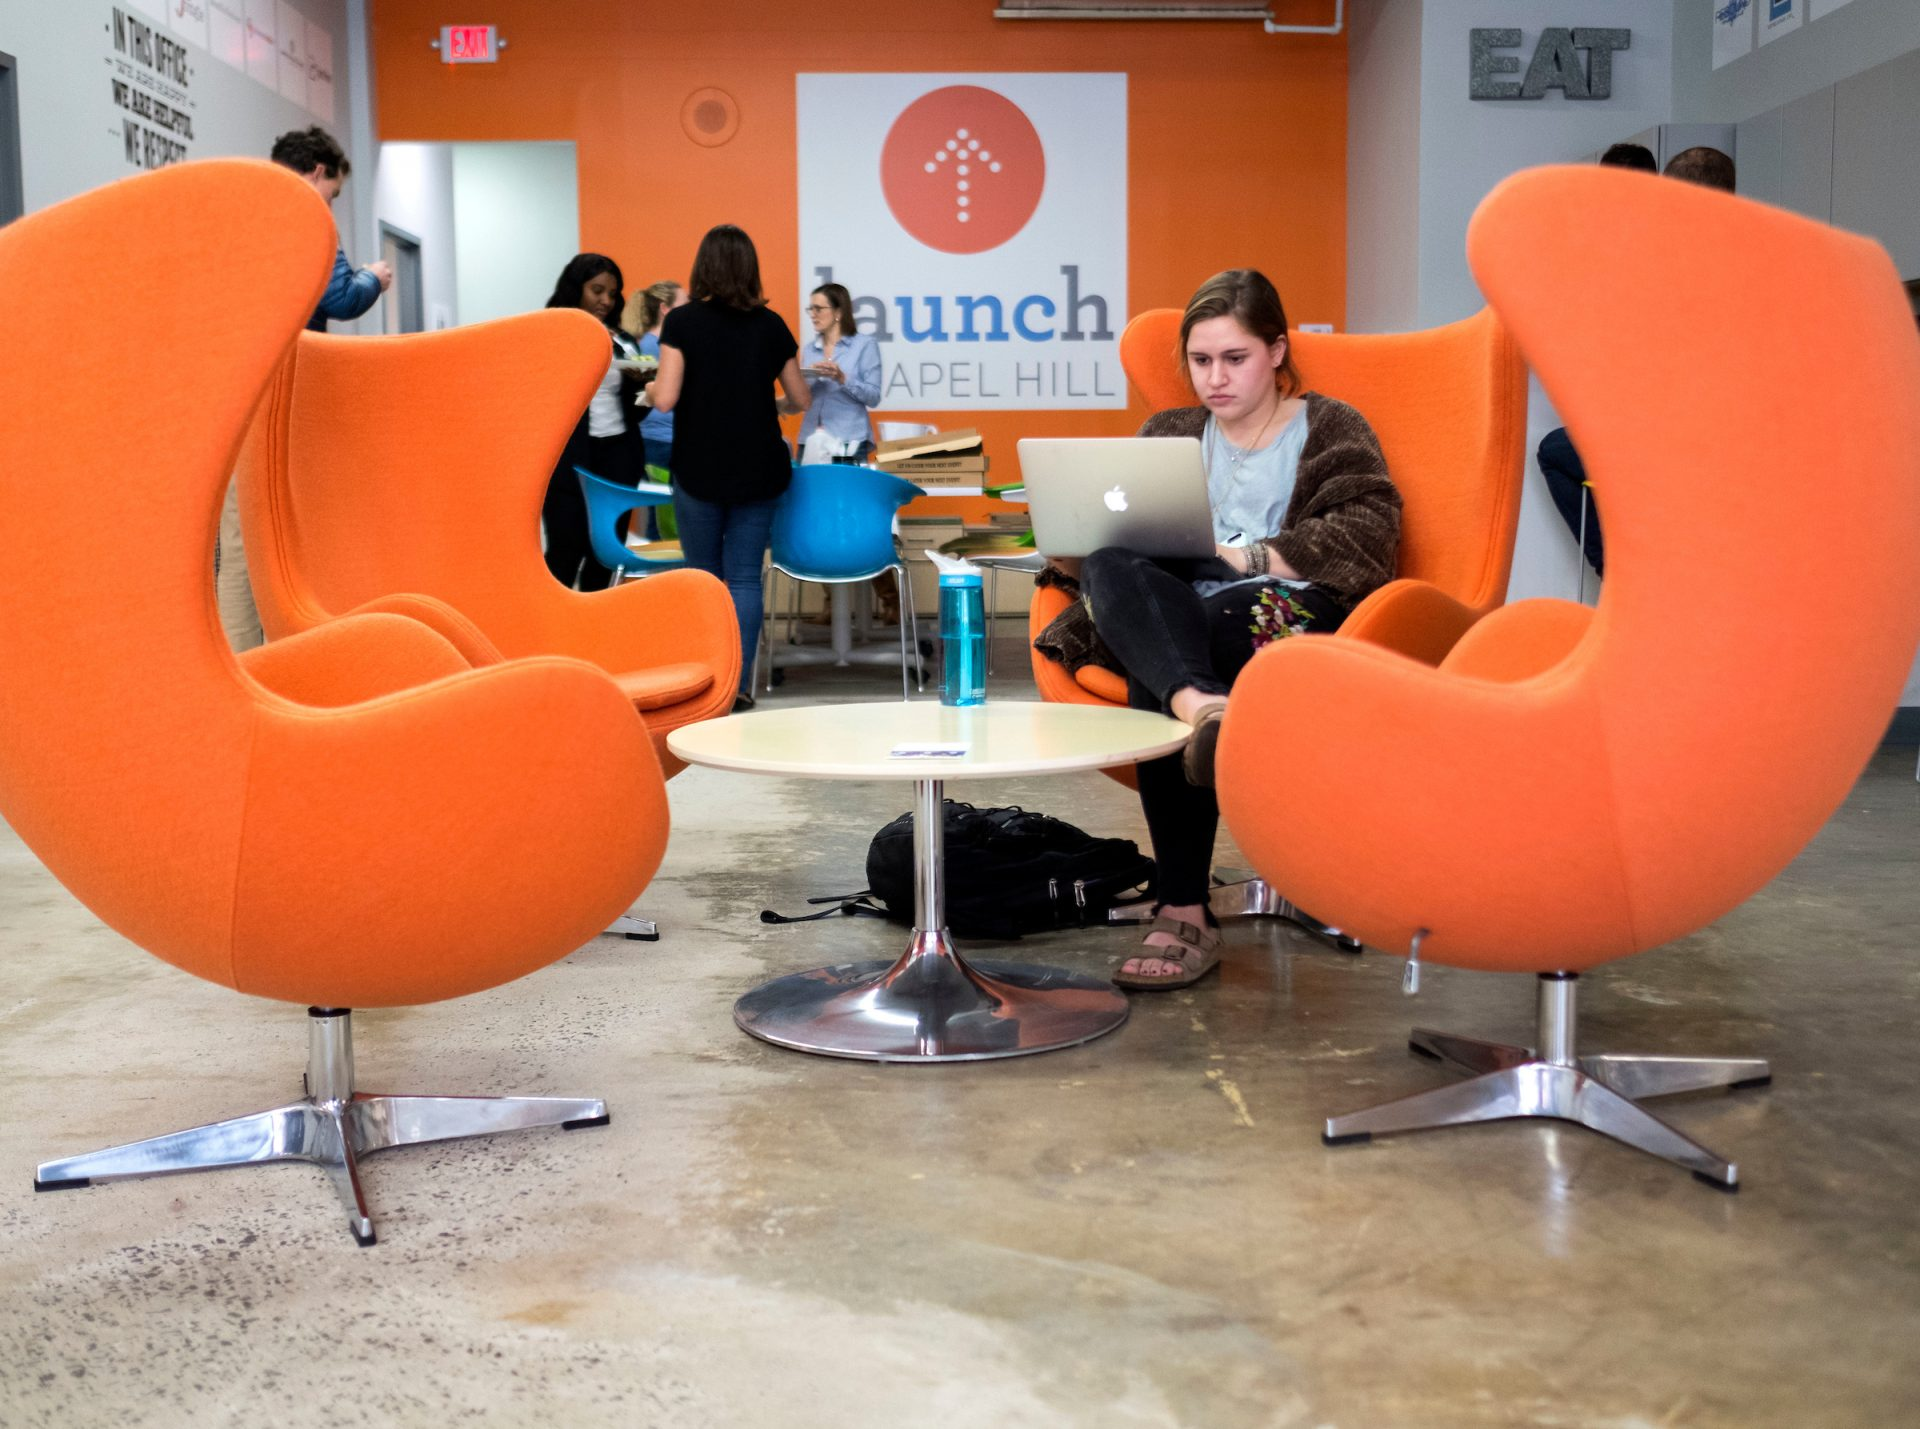 launch-chapel-hill-chairs